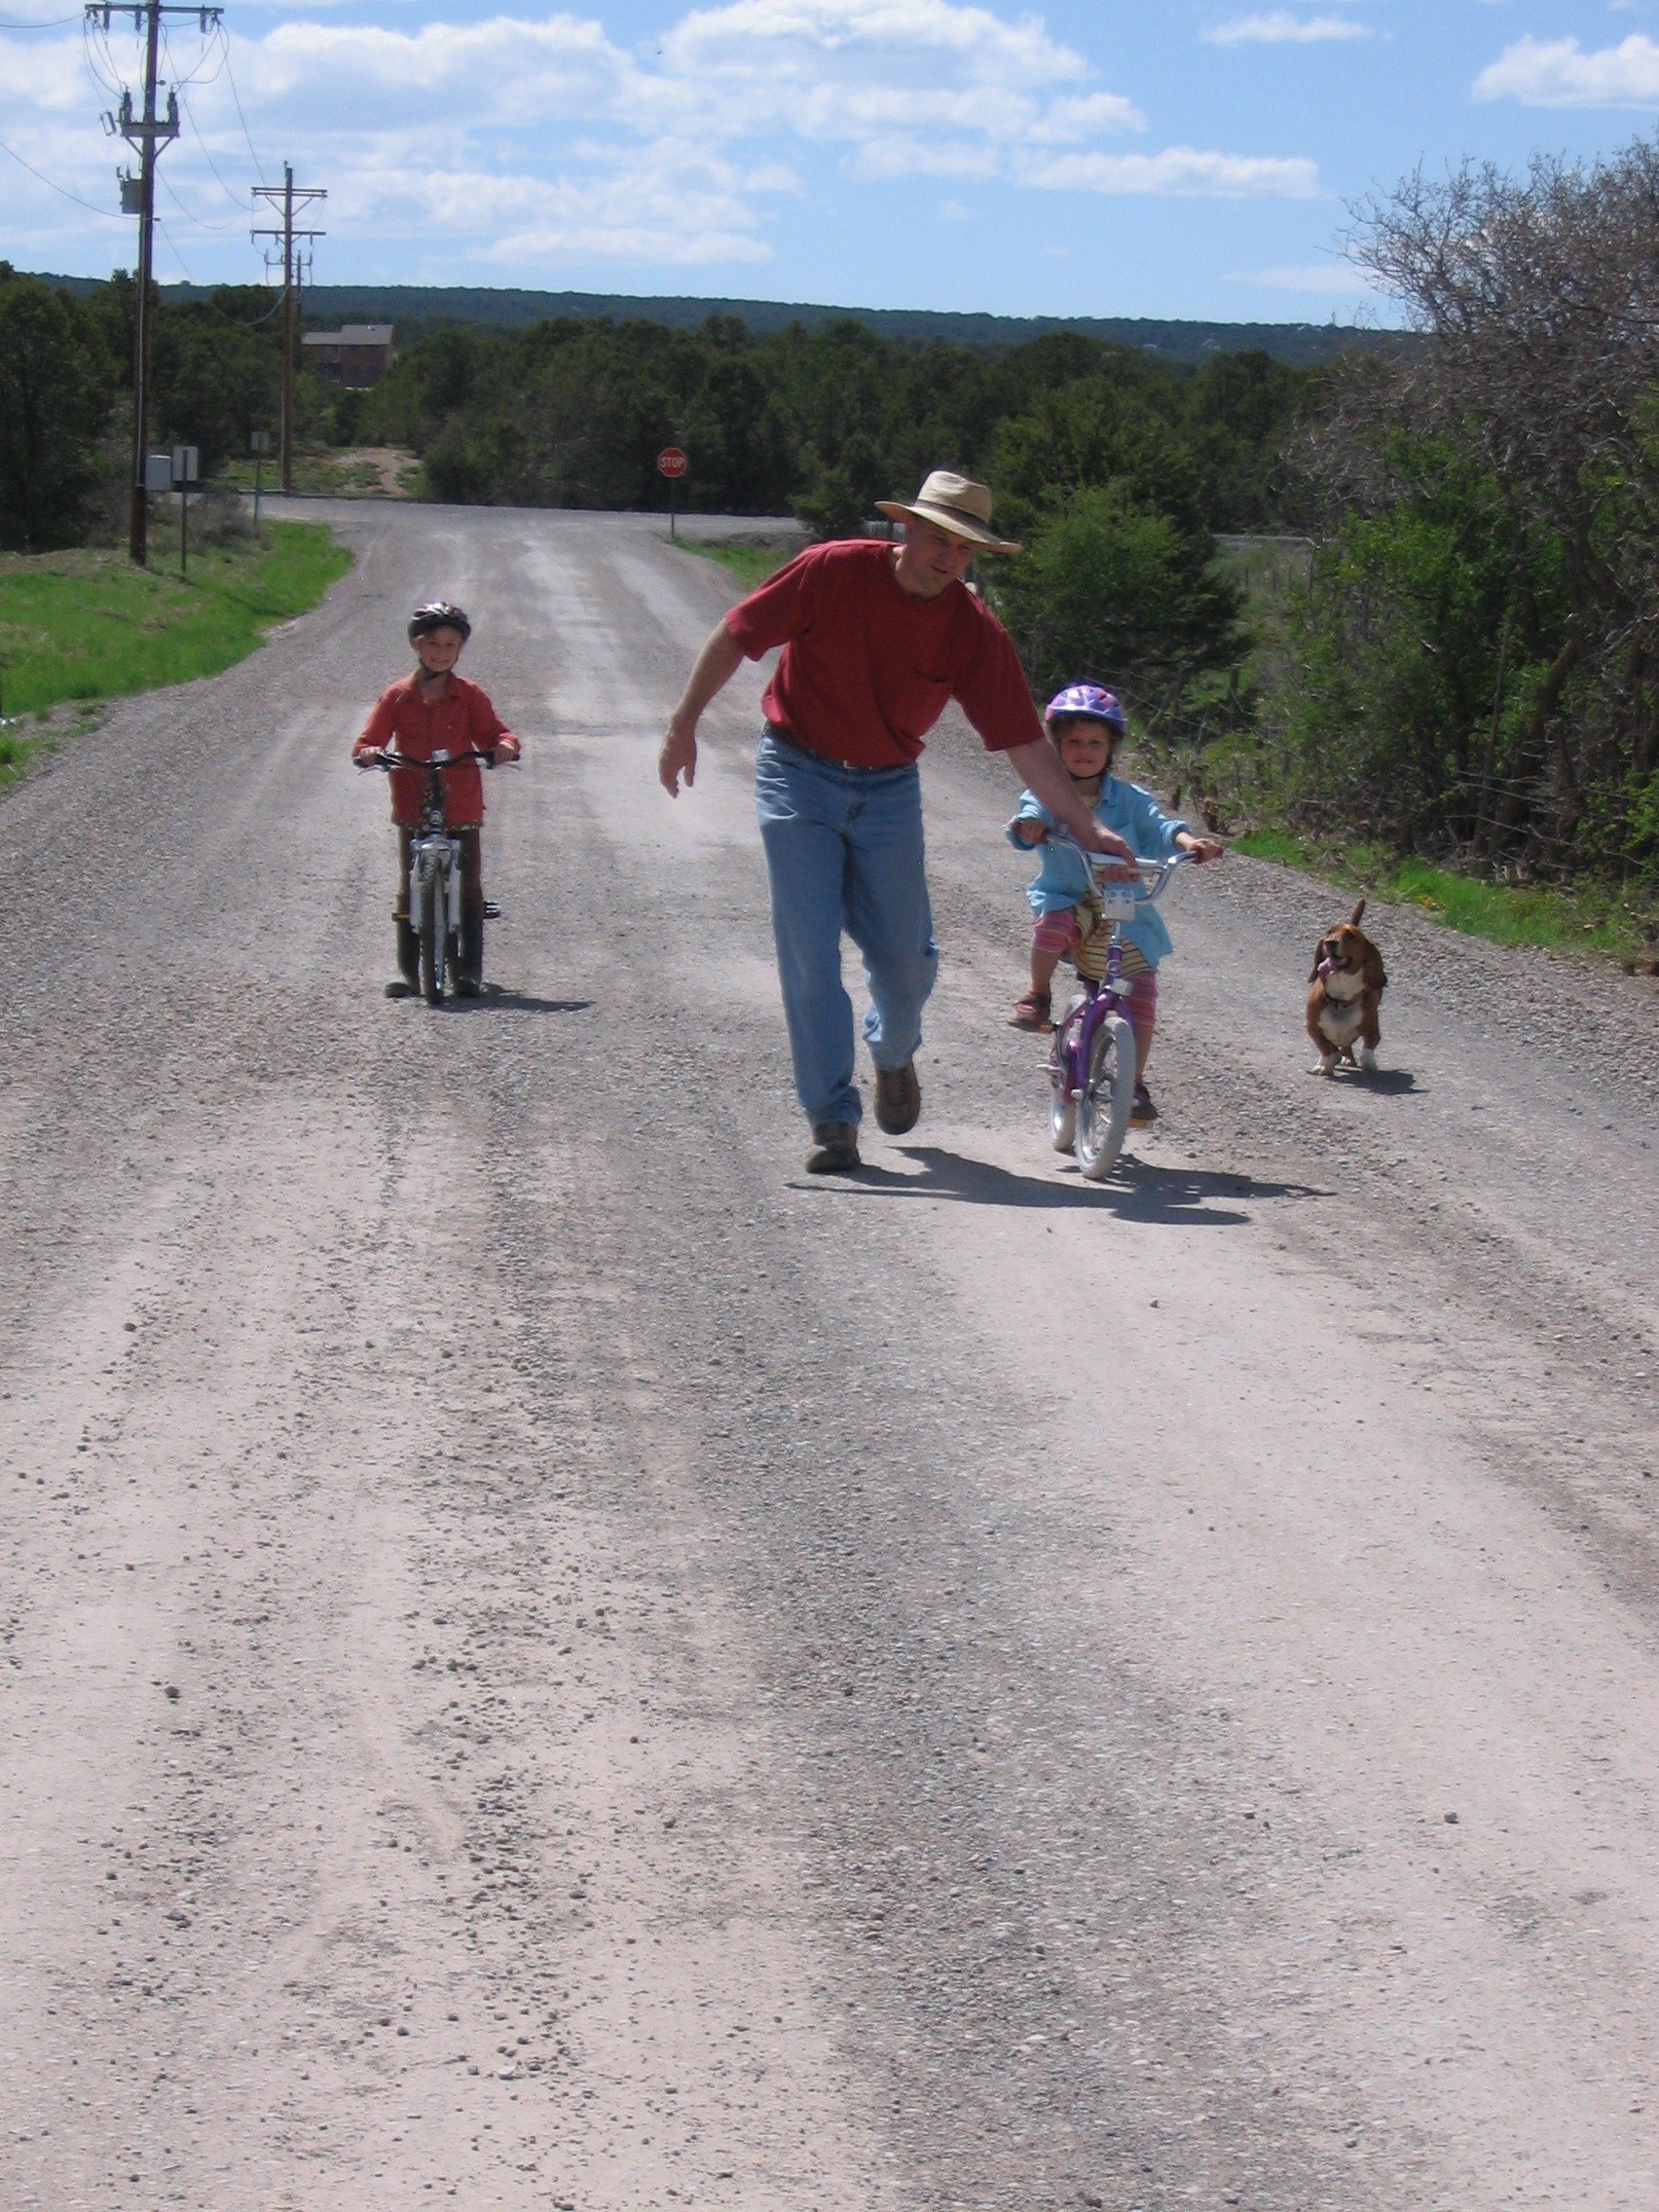 Learning to Ride a Bike on a Dirt Road 009